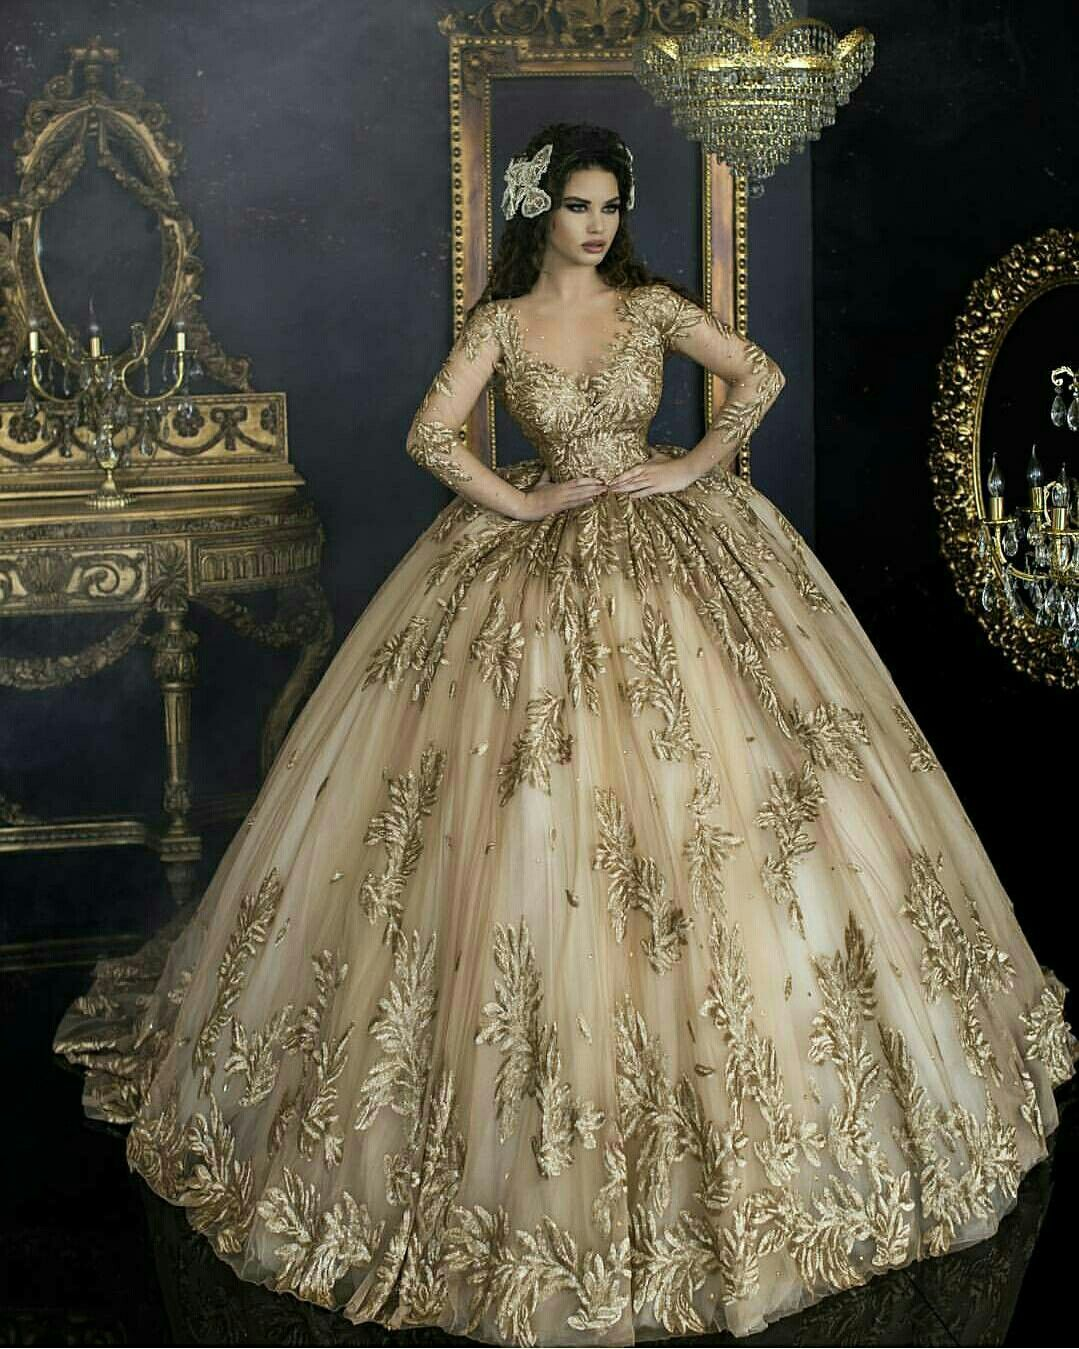 Pin by samira on mariage pinterest gowns wedding dress and wedding